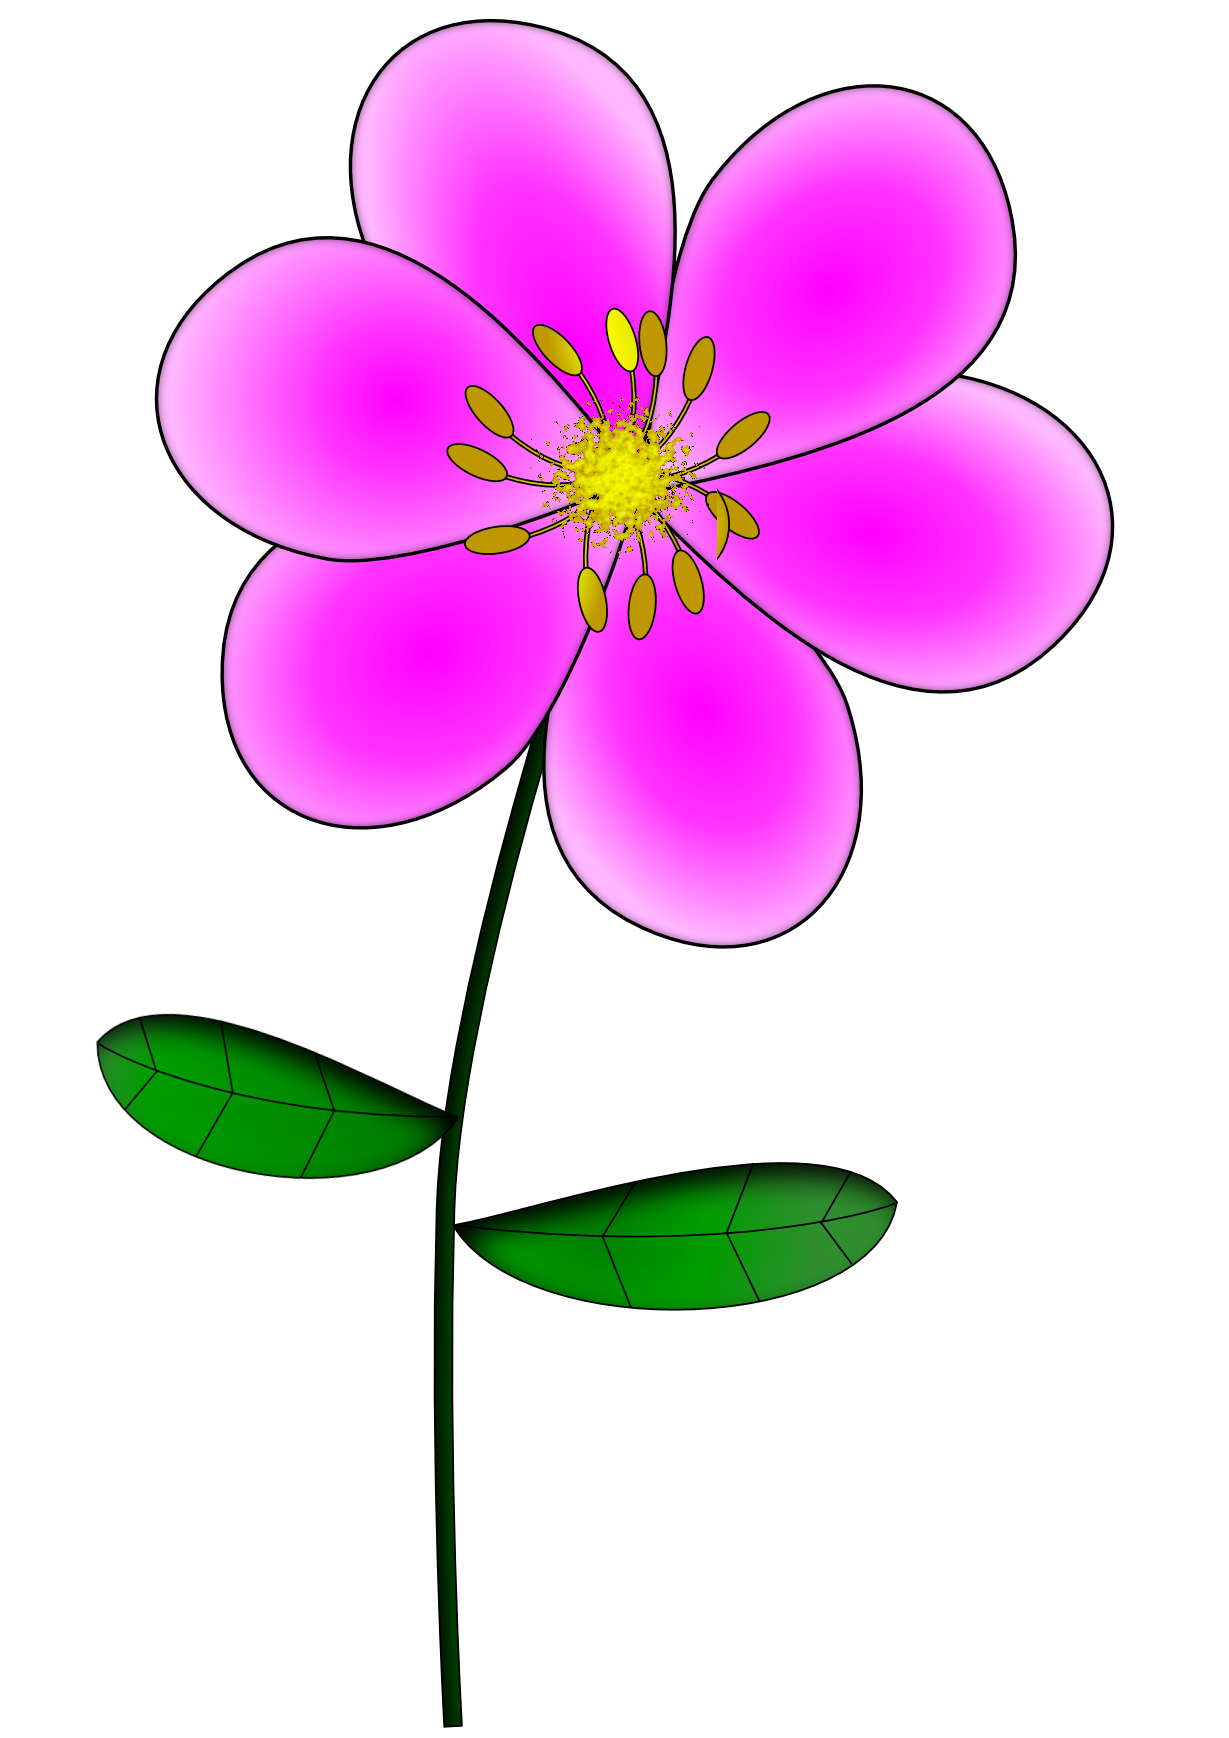 Pink flower with stem clipart clip freeuse stock FLÔRES CUTE | FLÔRES CUTE | Pinterest | Image search clip freeuse stock